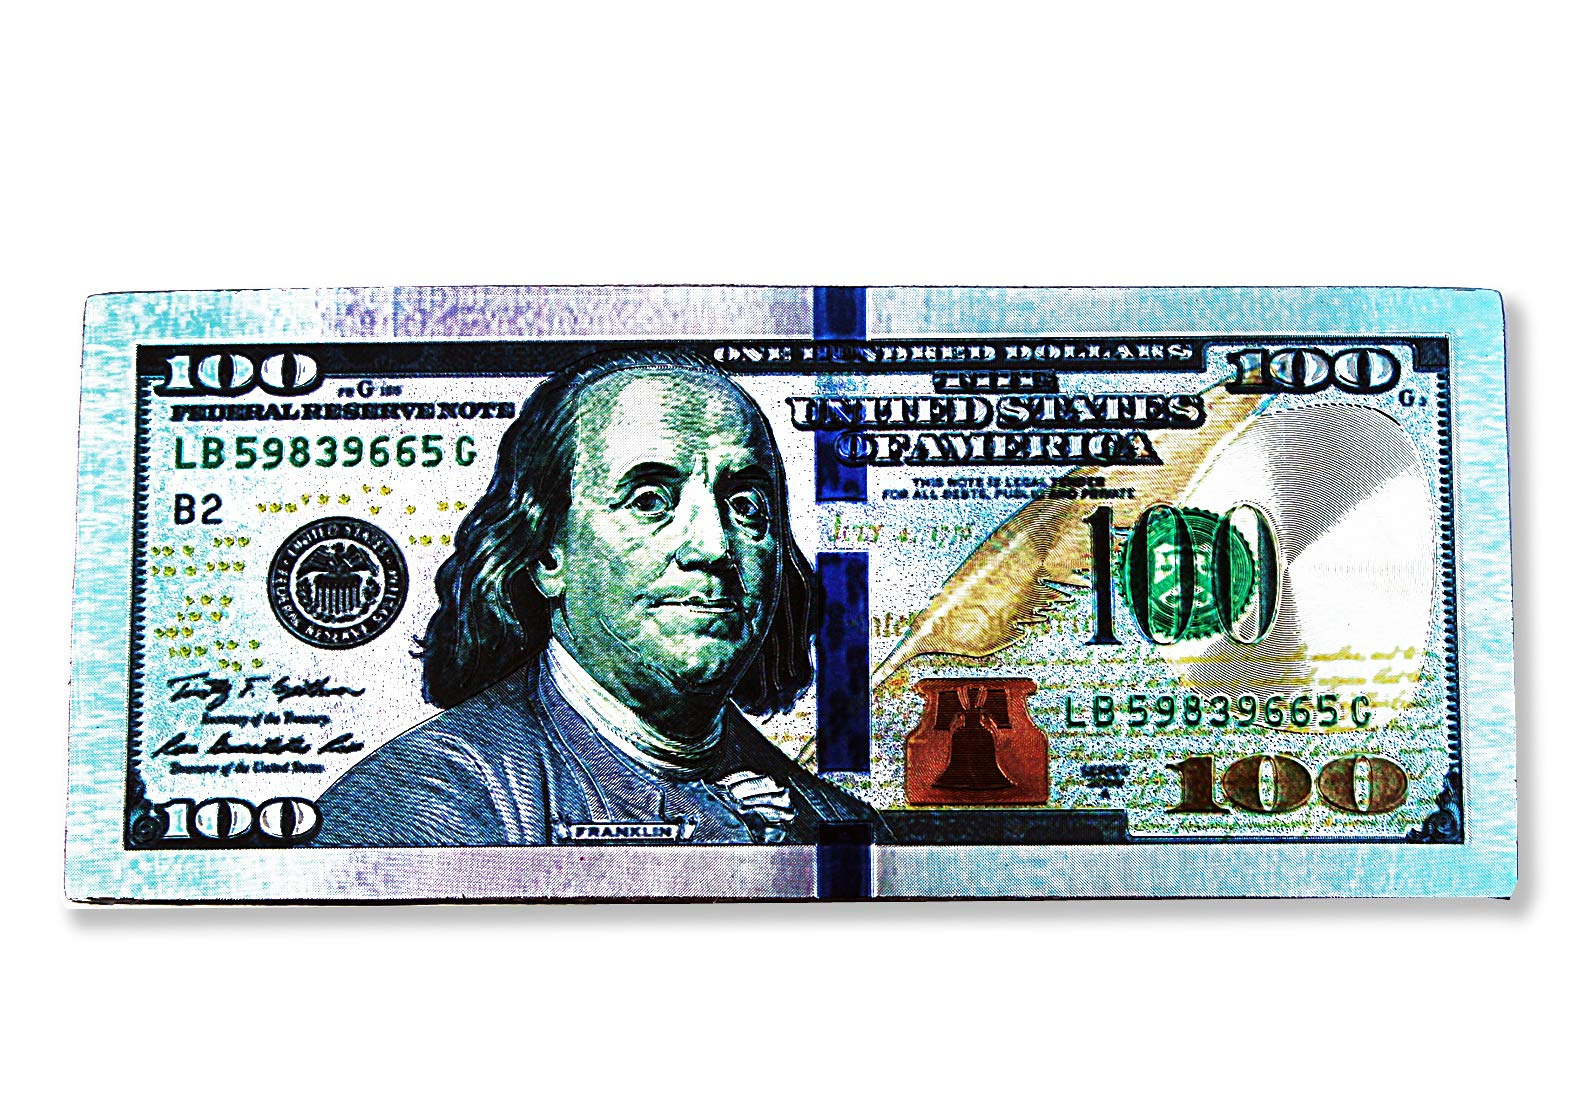 """LUCKY EYE MAGIC – 100 Dollar Bill Refrigerator Magnet, Multicolor Wall Magnet with 100 Dollar Bill Etched in Silver, Green, Bronze Colors, Great Gift, 2.5"""" x 6"""""""